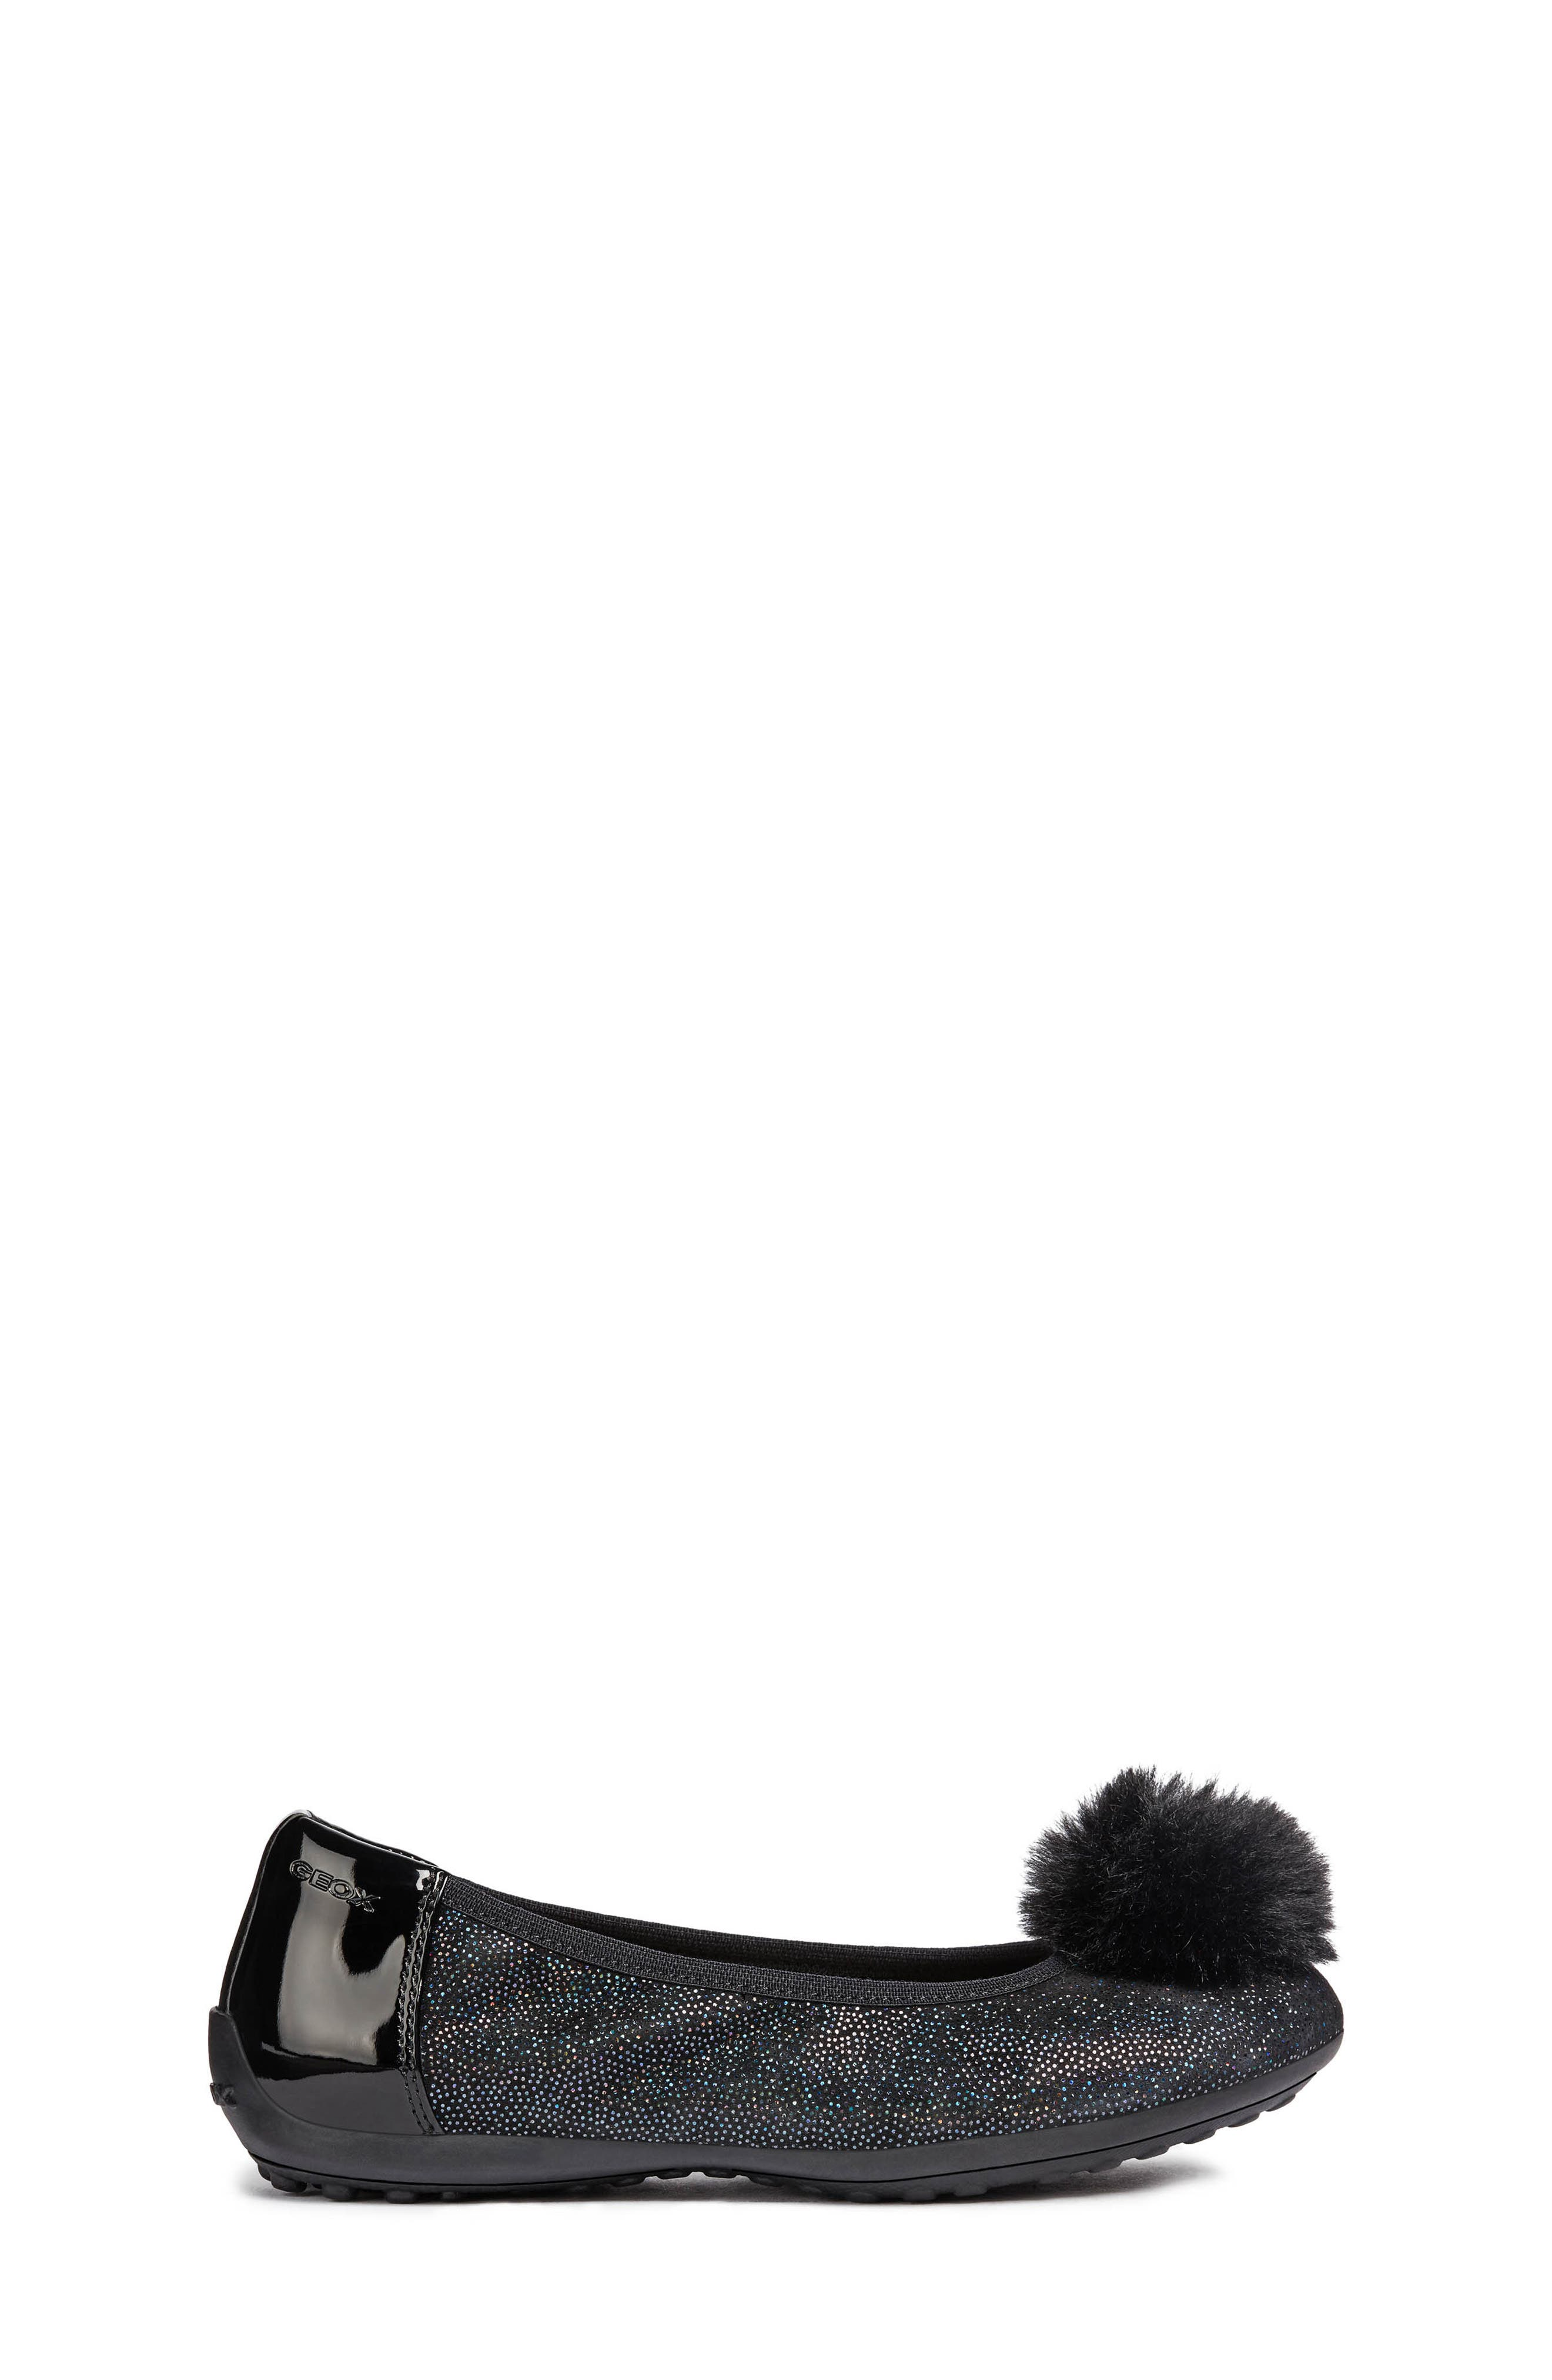 GEOX, Piuma Faux Fur Pom Glitter Ballerina Flat, Alternate thumbnail 3, color, BLACK